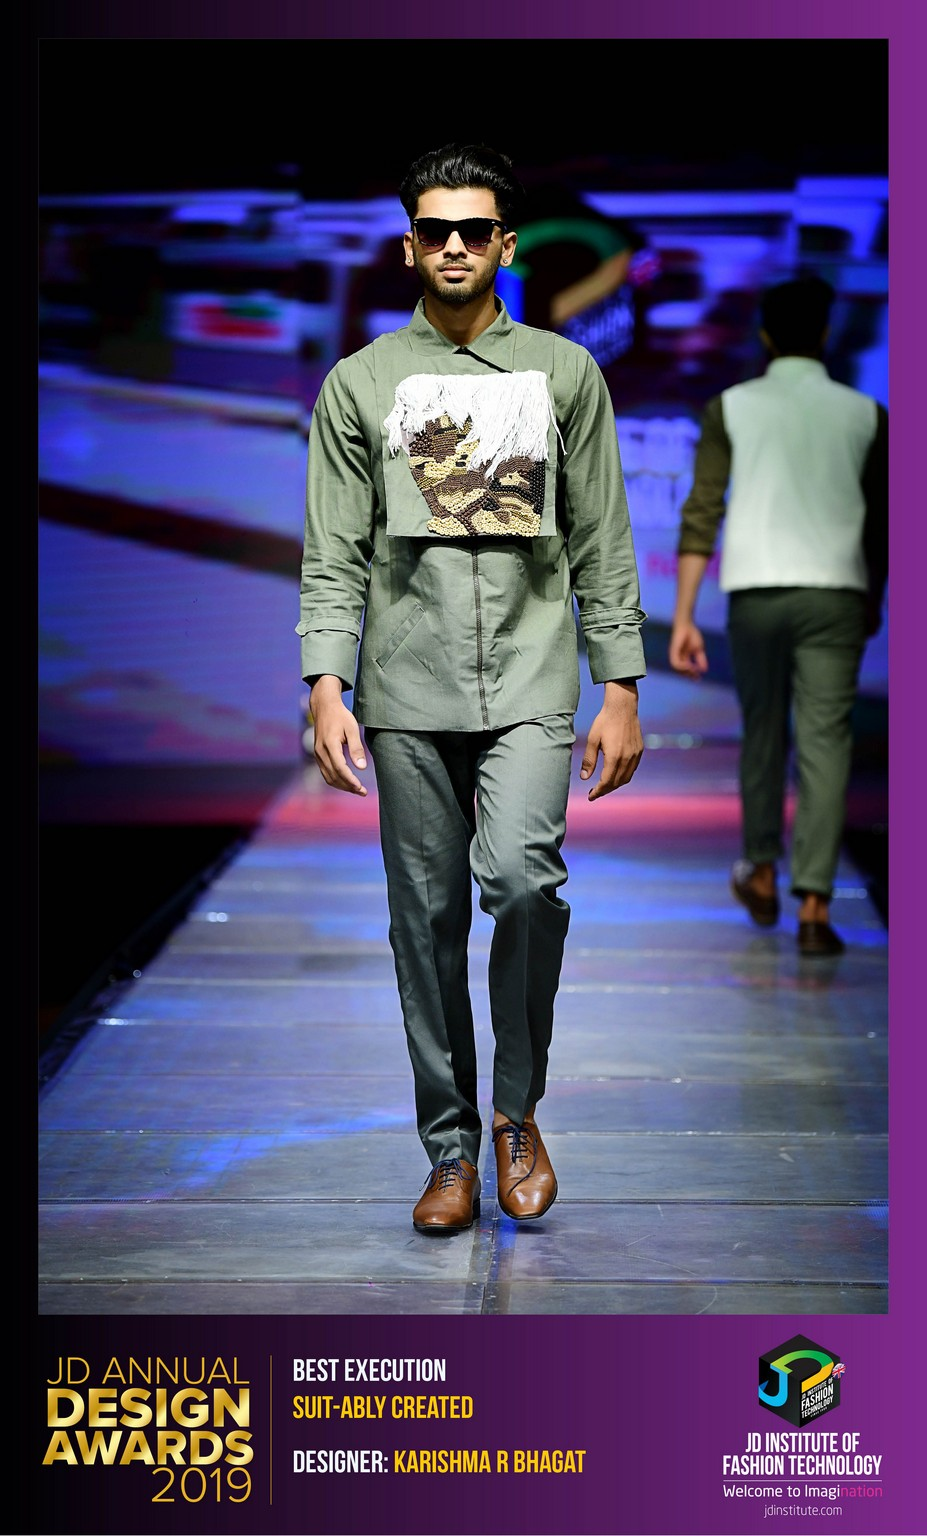 SUIT-ABLY CREATED - CURATOR - JDADA2019 suit-ably created - SUIT ABLY CREATED 8 1 - SUIT-ABLY CREATED – CURATOR – JDADA2019